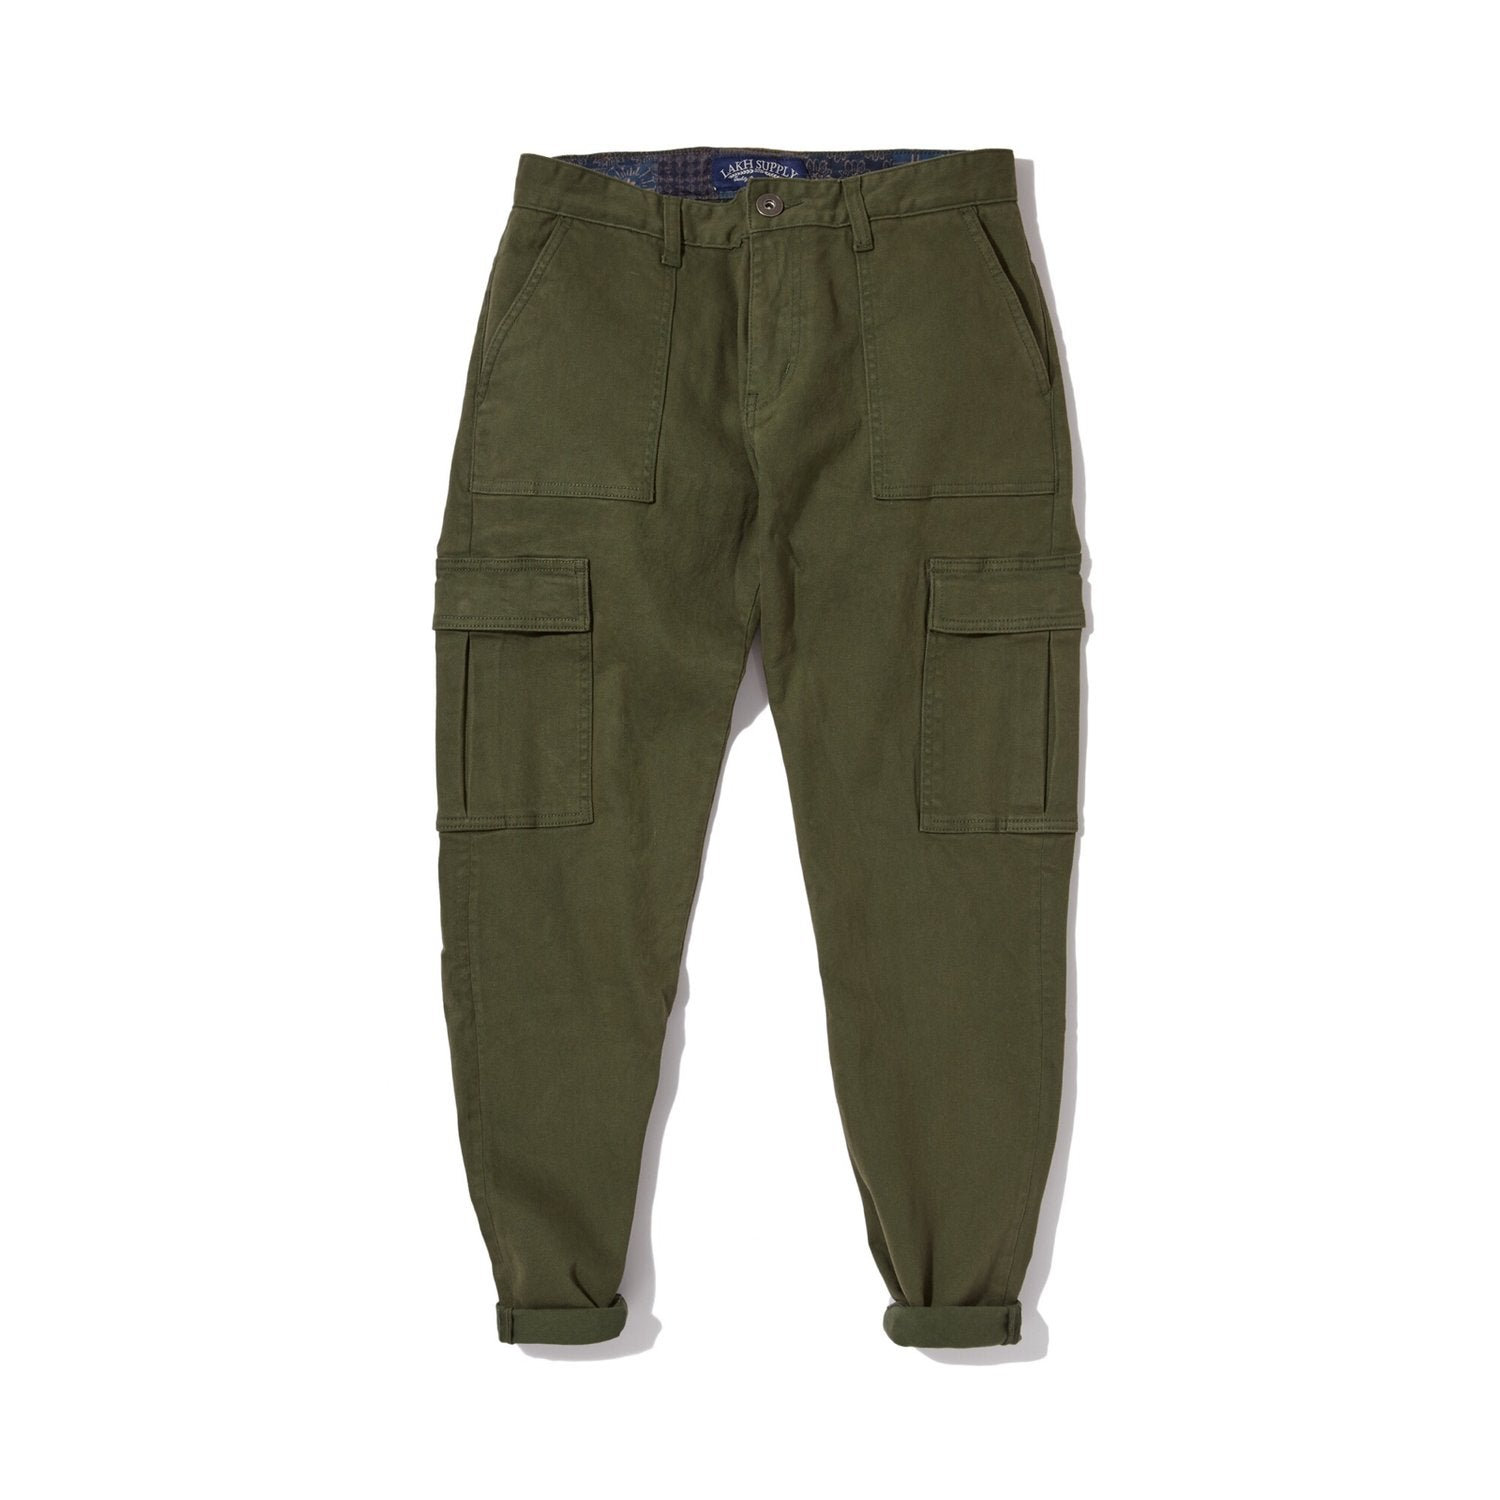 Button Pants - Fatigue Cargo Olive